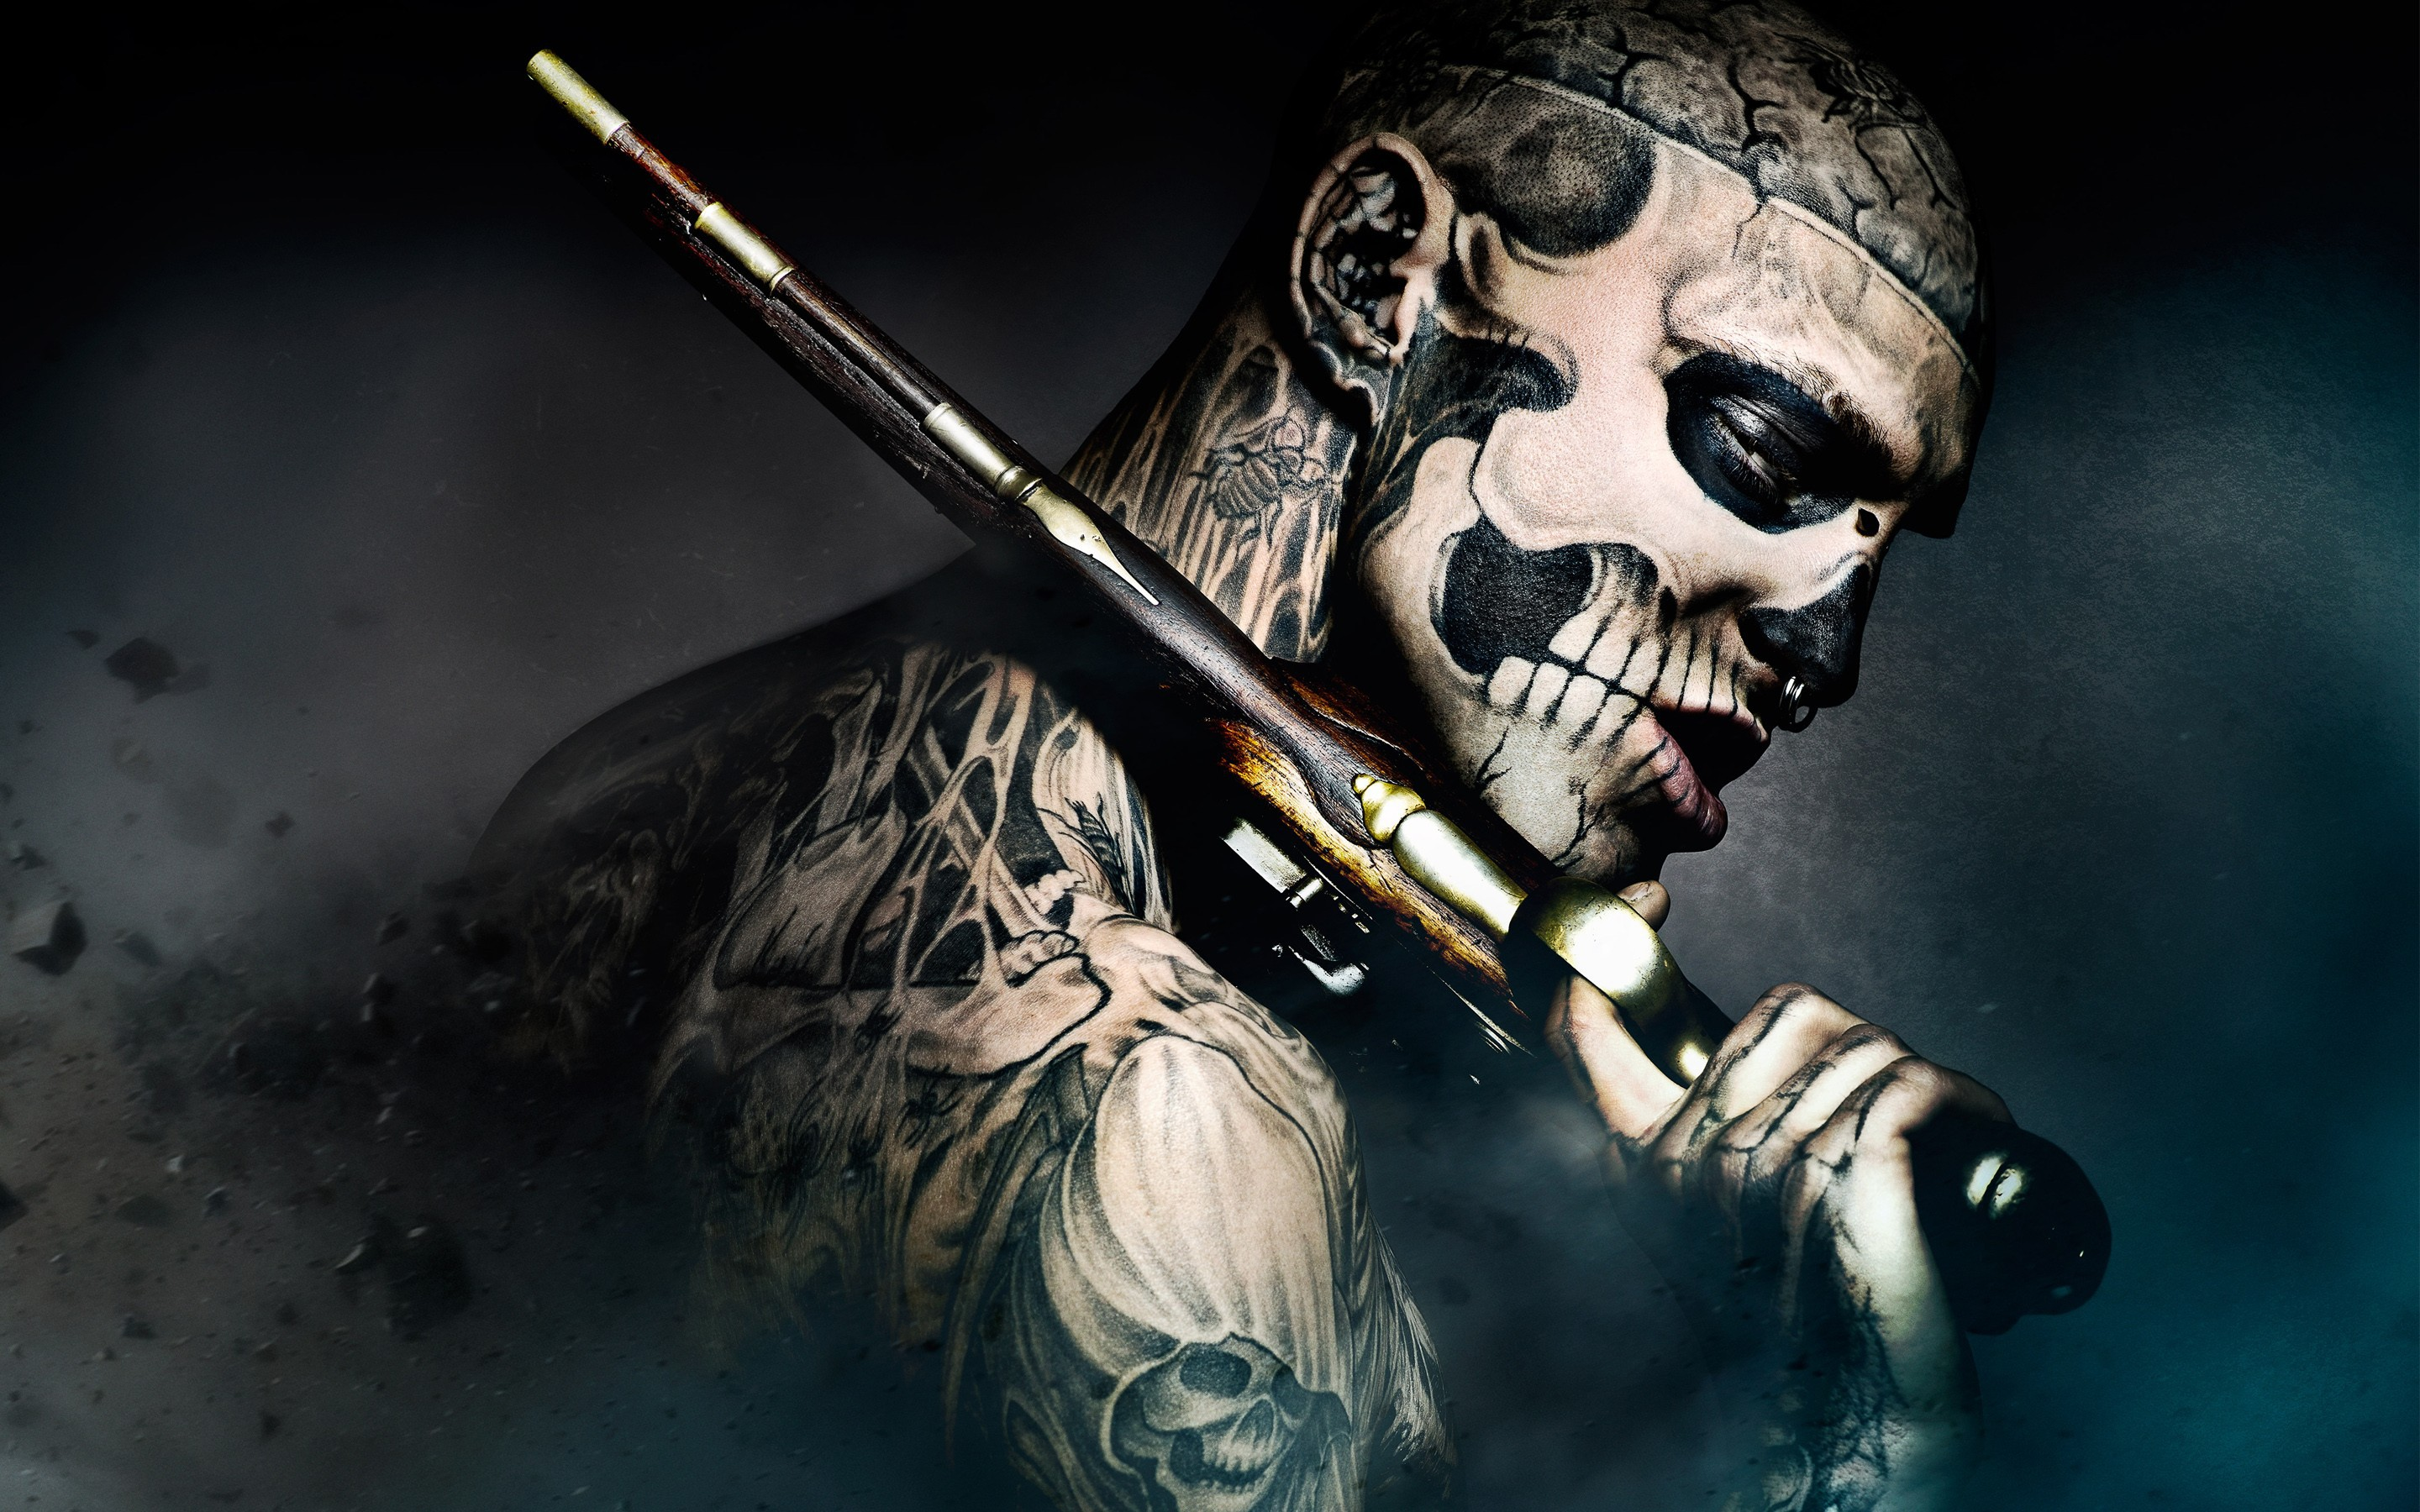 HD Wallpapers Of Tattoos